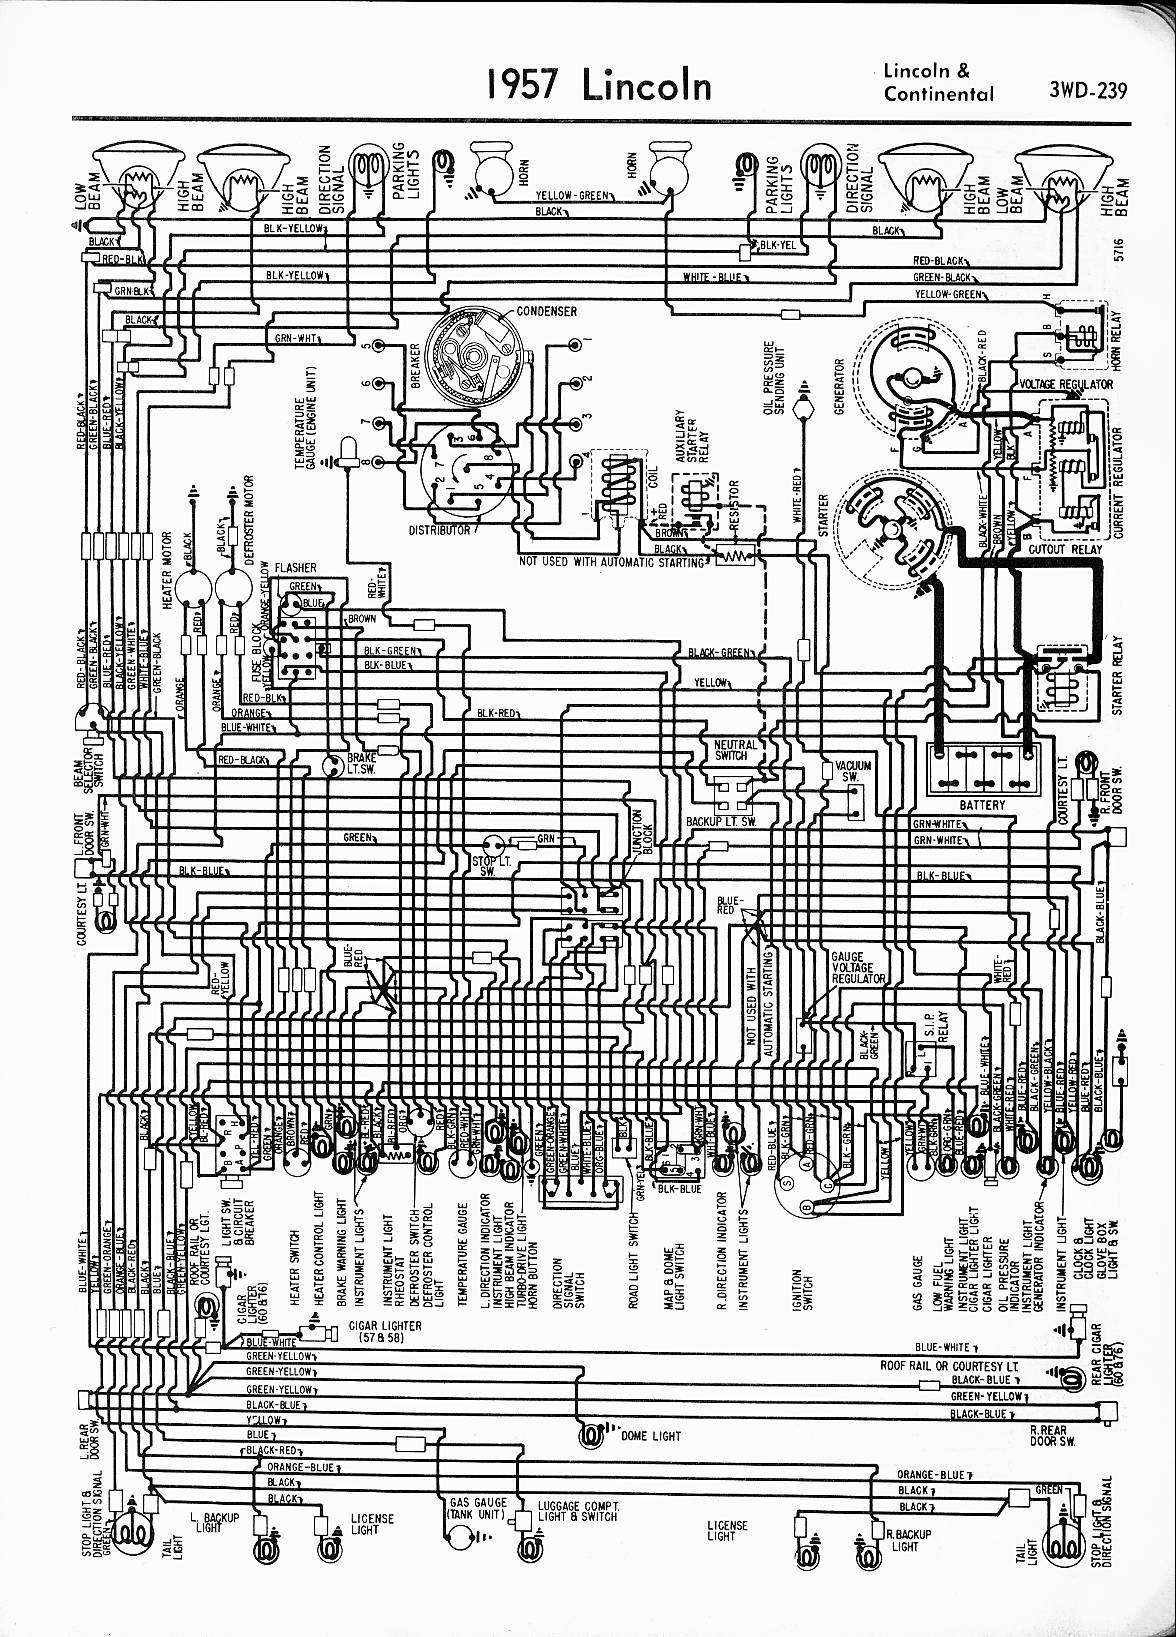 Diagram Chevy Corvette Wiring Diagram 1957 1965 Full Version Hd Quality 1957 1965 Degreediagramtheir Fabricelefevreinstitut Fr